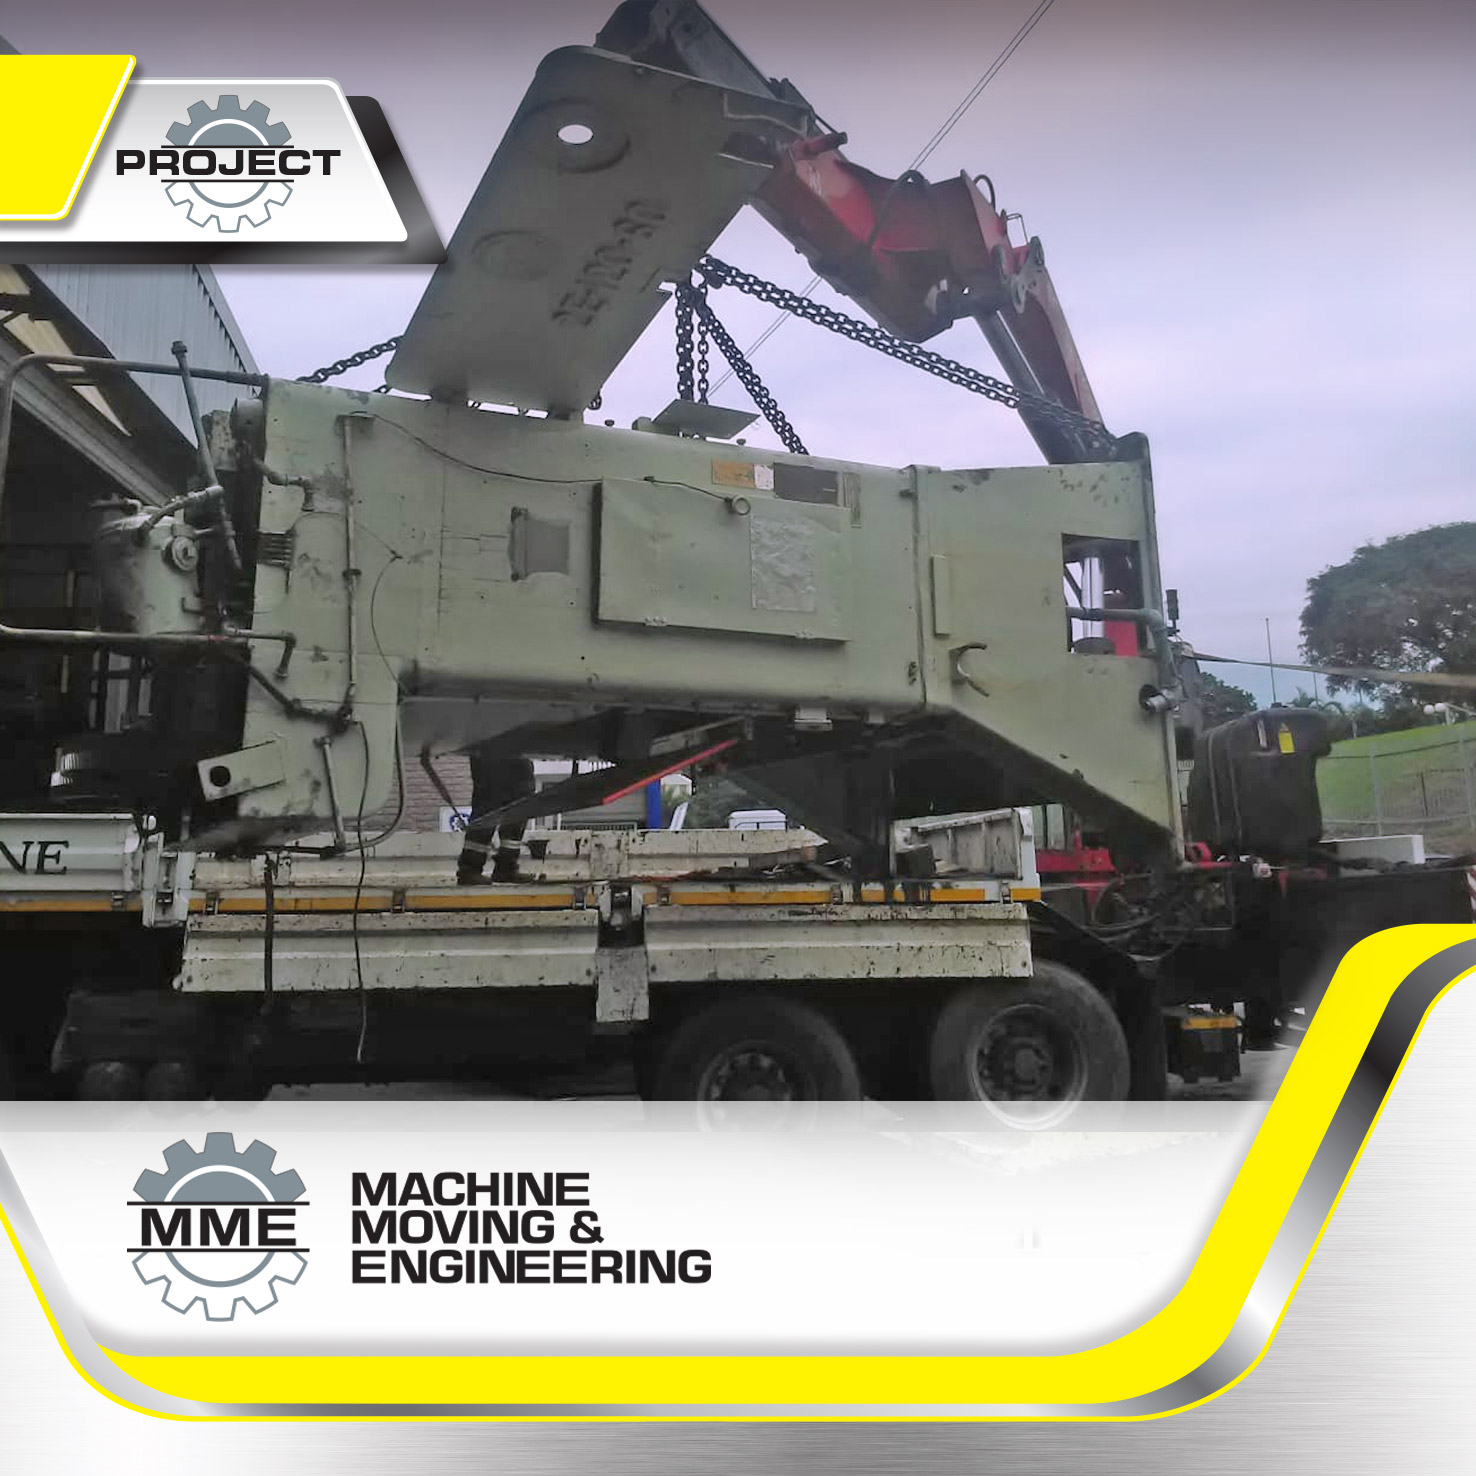 press removal mme-projects-mme-machine-moving-engineering-machinery-equipment-gauteng-kwazulu-natal-south-africa-serious-muscle